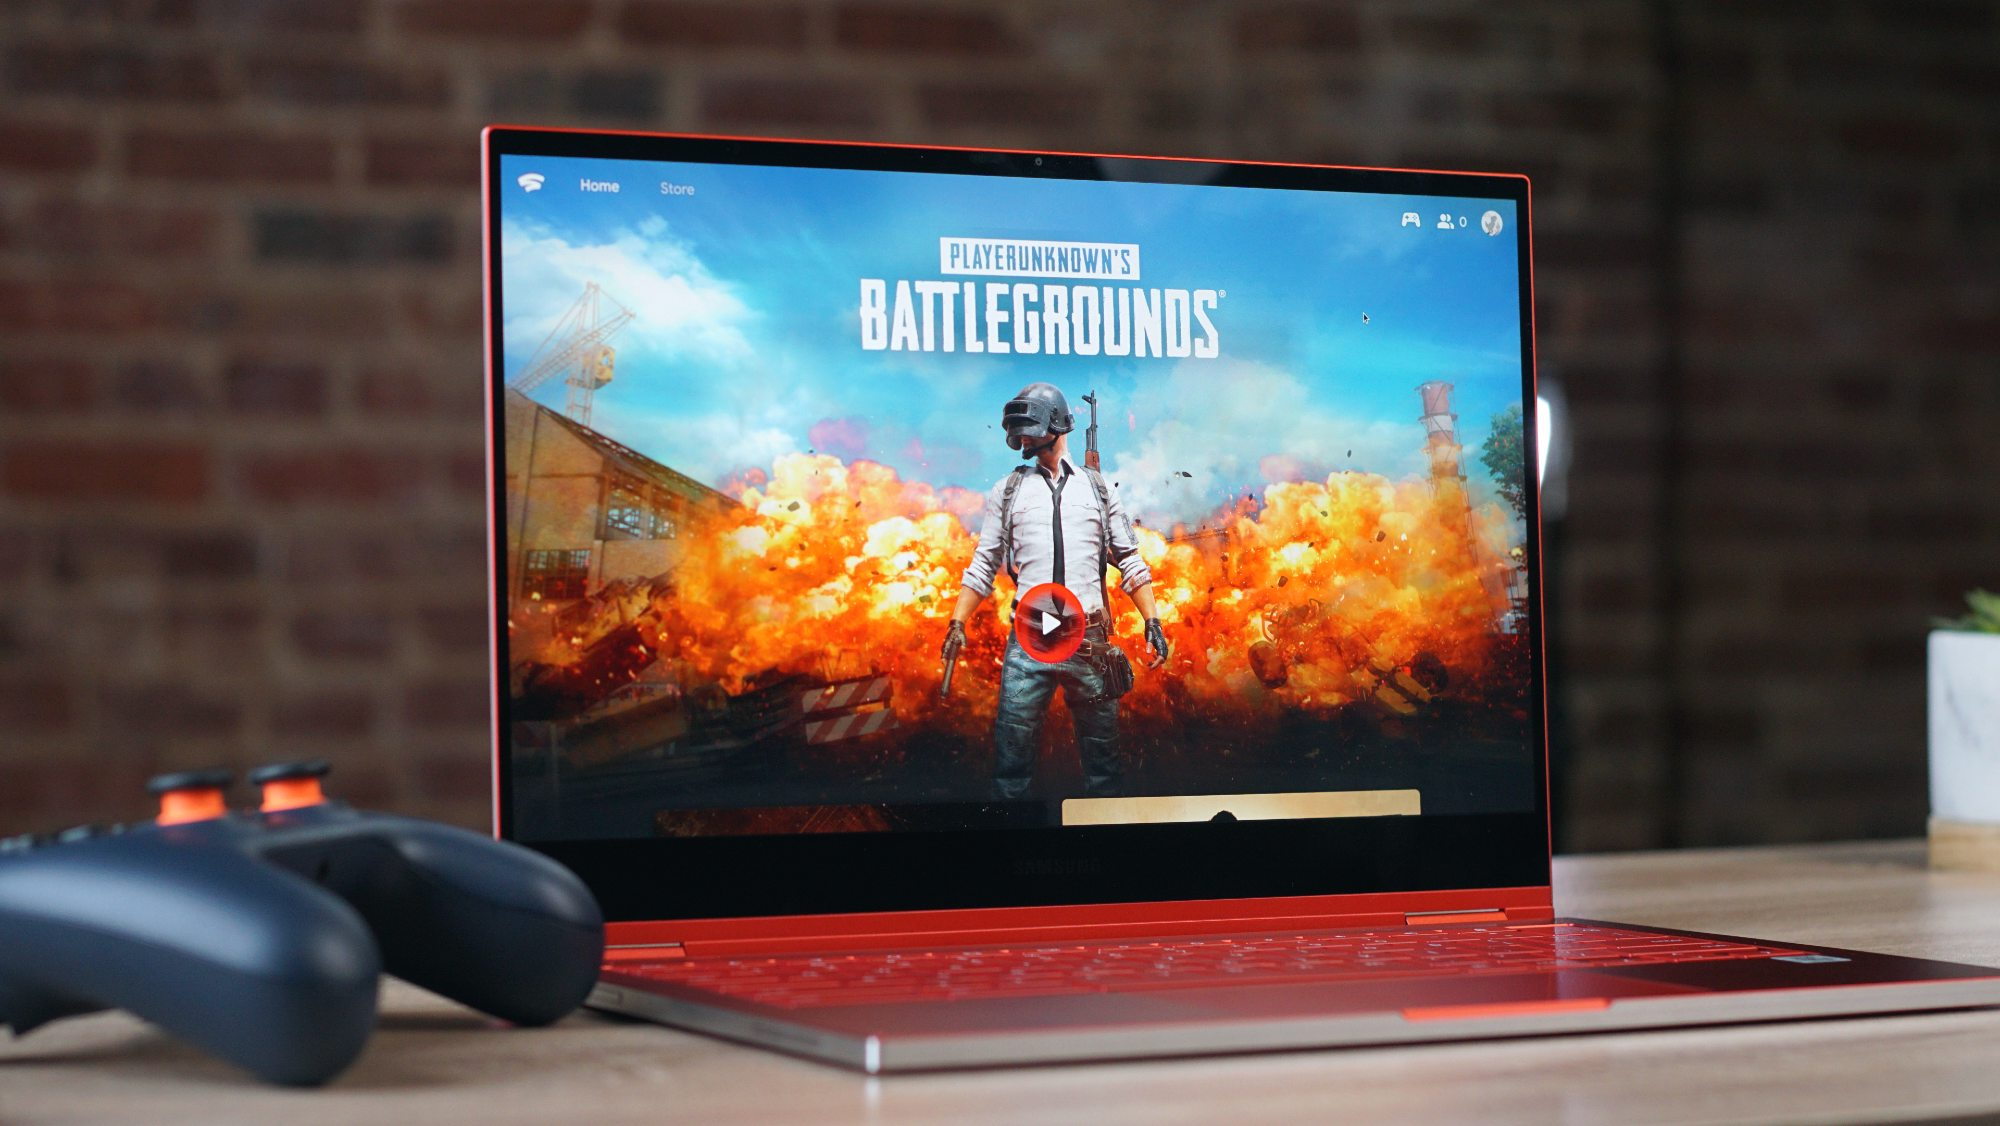 I took a break from playing PUBG on Stadia to tell you PUBG is now on Stadia